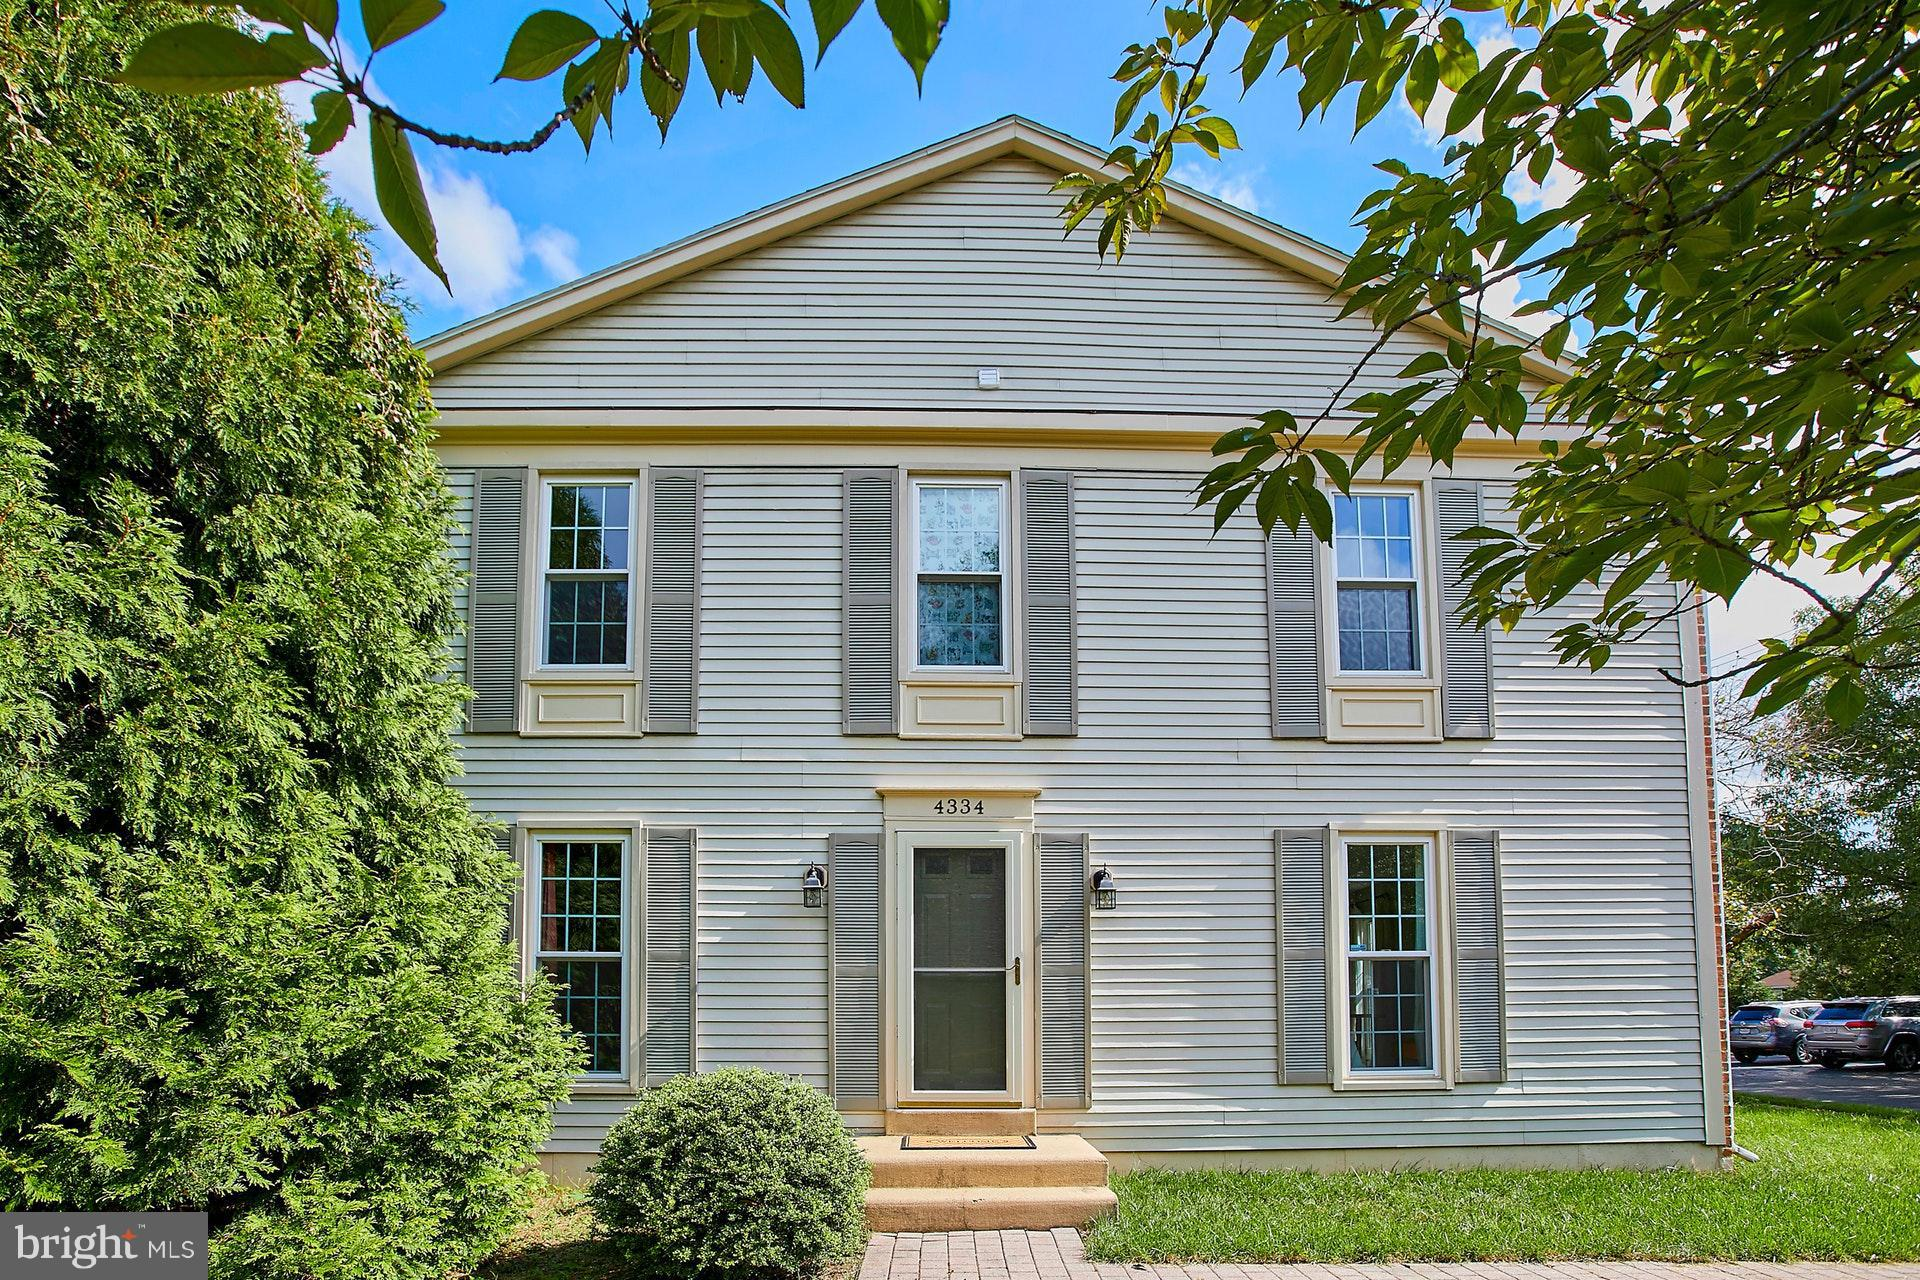 OPEN HOUSE SAT & SUN OCT 20TH & 21st 2-4PM! Spectacular end unit TH w/ 3 BR, 2 Full BA, 2 half BA & 2 wood burning FP.  All new carpet in Family room & upper lvl. Updated gorgeous kitchen w SS appliance & granite. Both full BAs updated. Lower lvl with den/ office space & built in bookshelves. Fenced in patio- perfect for entertaining. Commuter dream location - 5 mins to METRO, mins to Old Town, DC